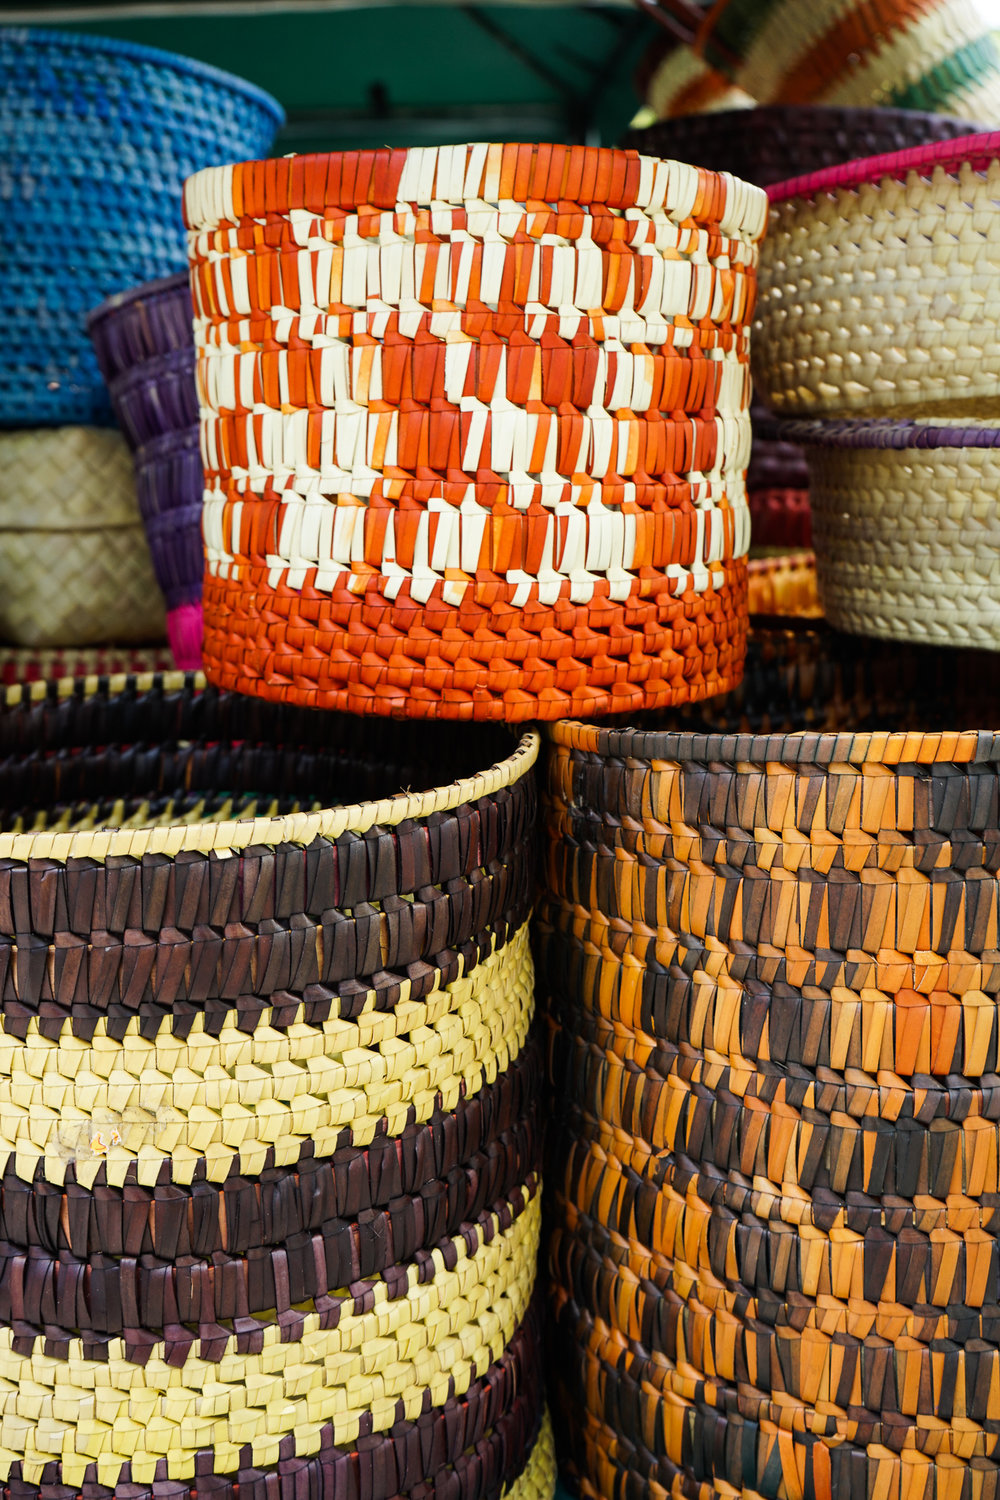 Sri Lankan homewares - palmyrah weaved baskets from Mannar by Natura available at Good Market in the Viharamahadevi Park South East shopping district